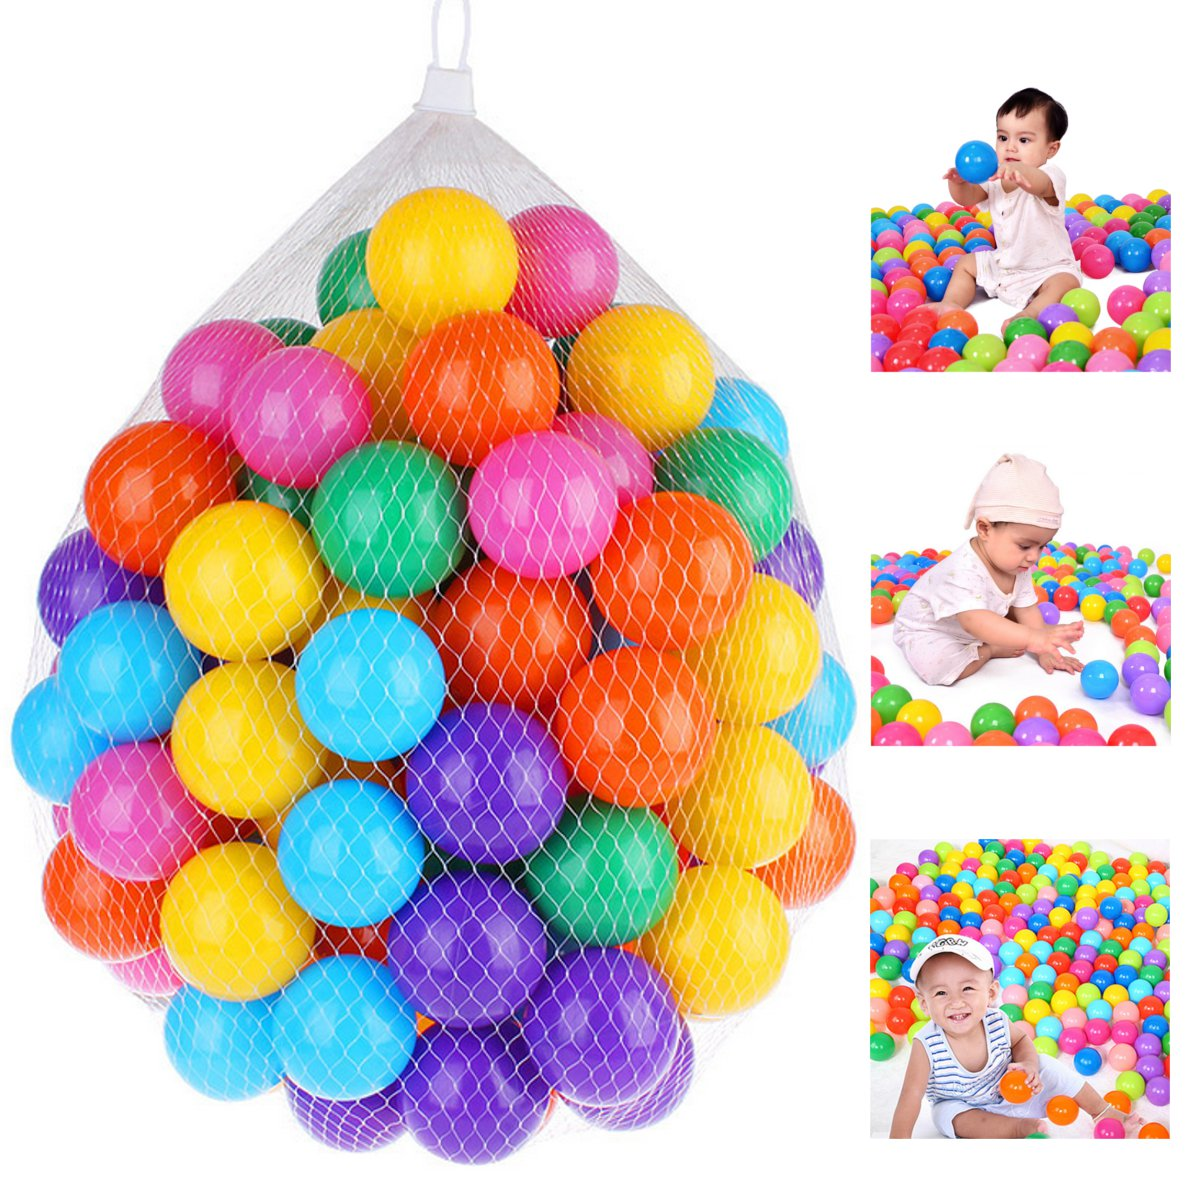 100pcs Soft Plastic Ocean Ball 7cm Quality Secure Baby Kid Pit Toy Swim Colorful Ball Toys